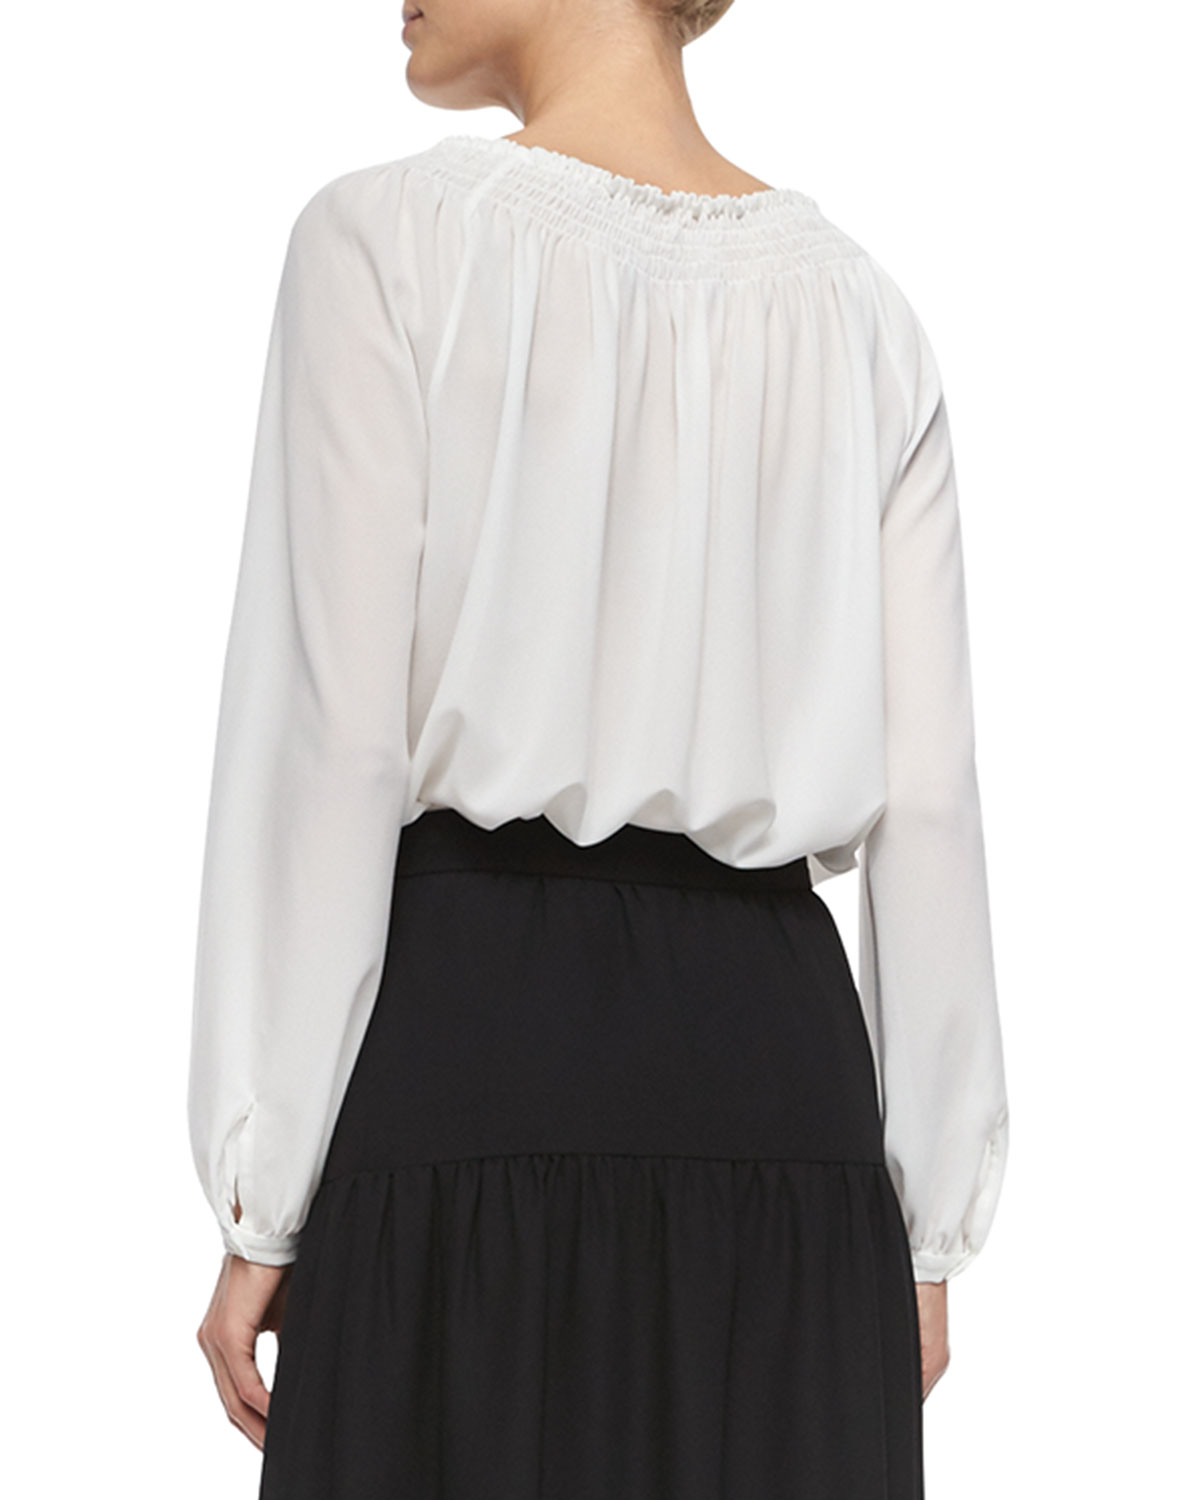 Cotton Peasant Blouses